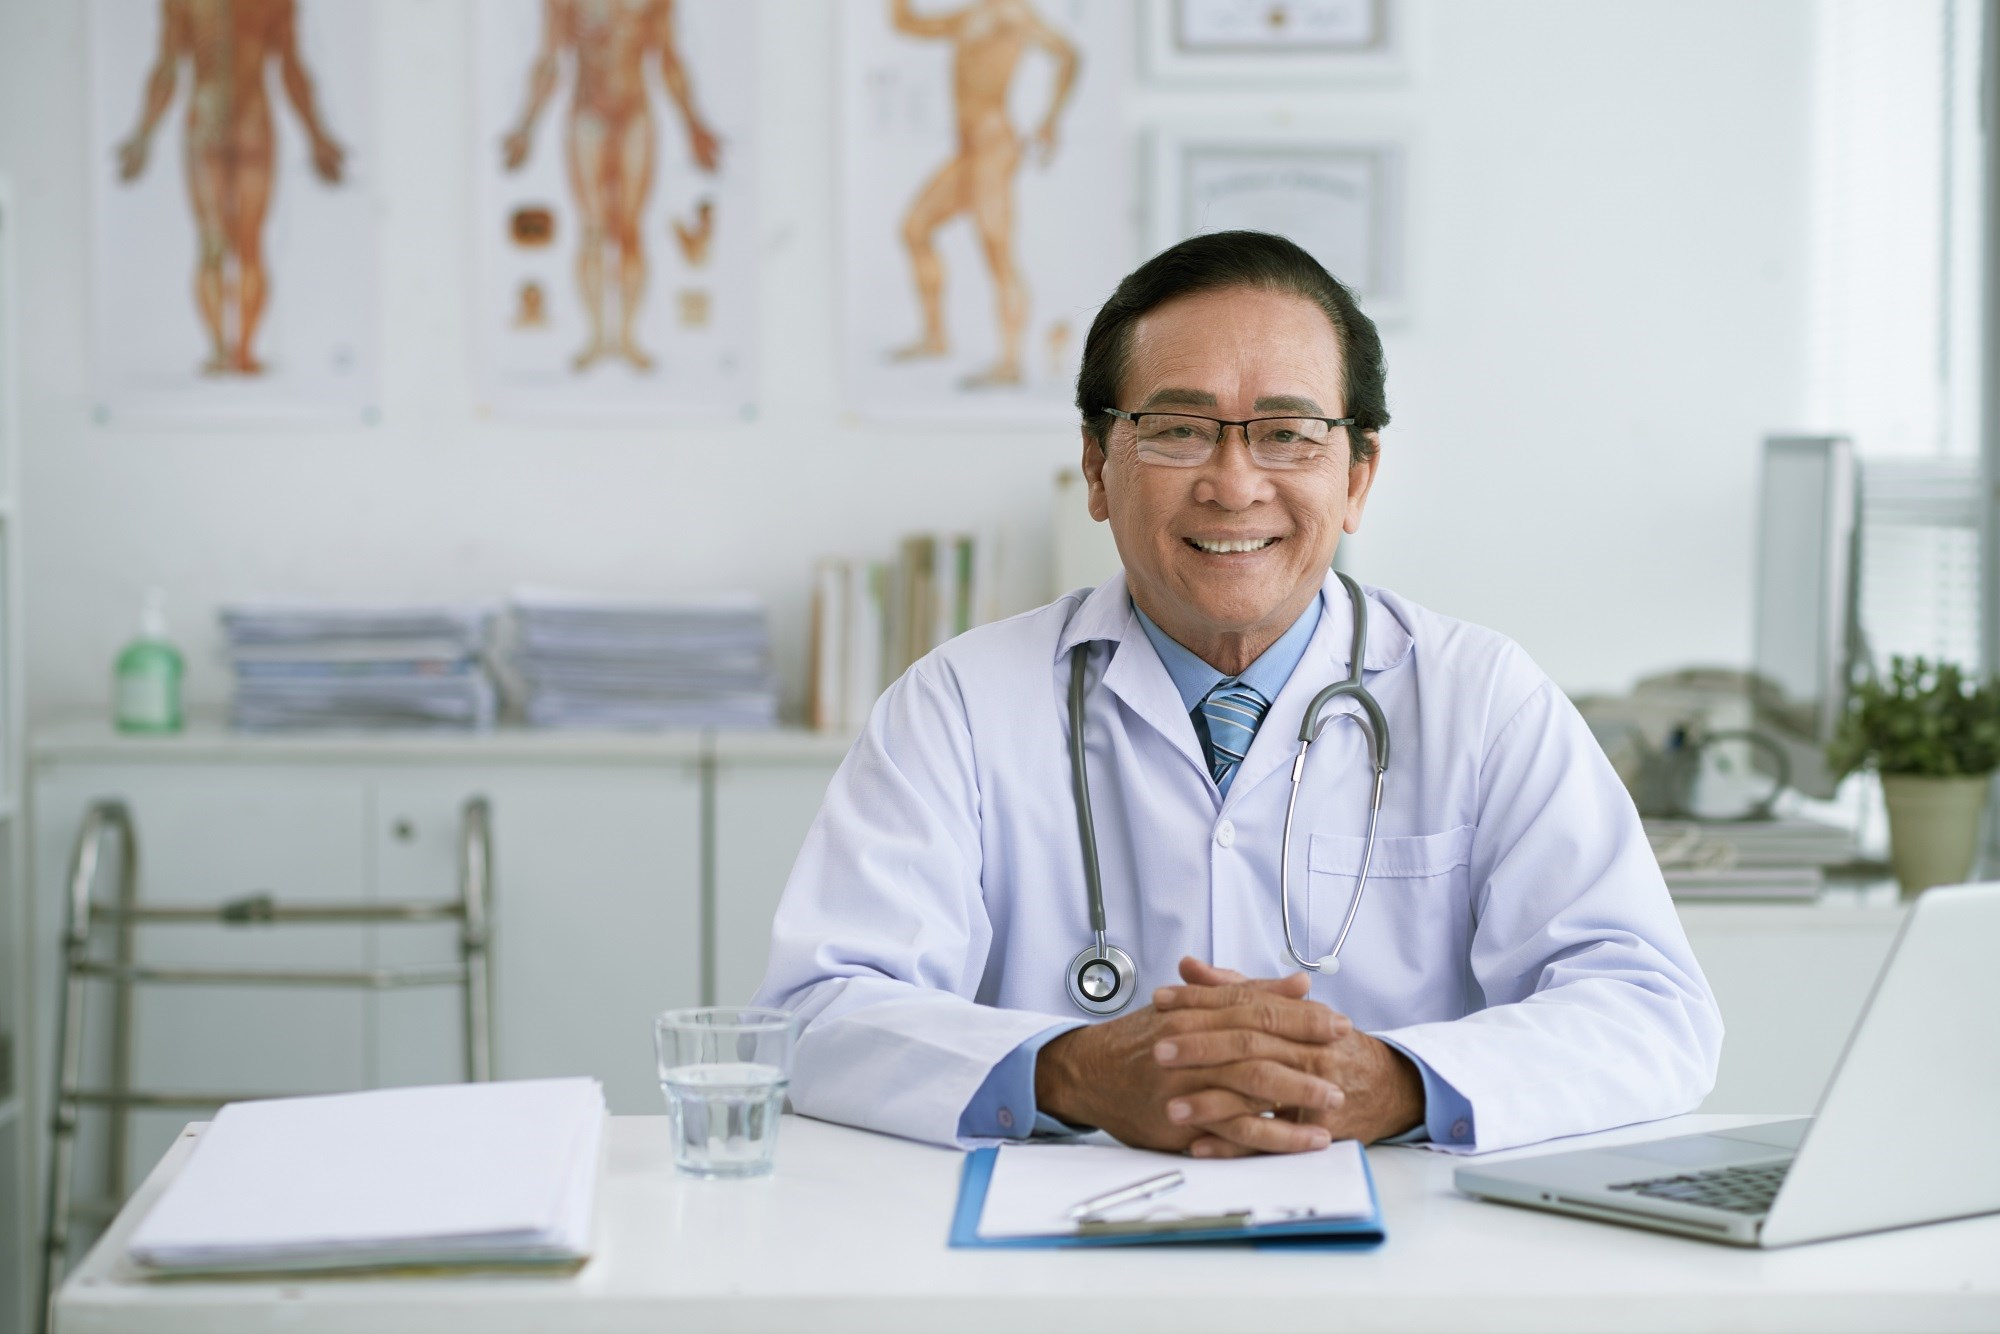 Four strategies are presented to help physicians make personal and professional gains.